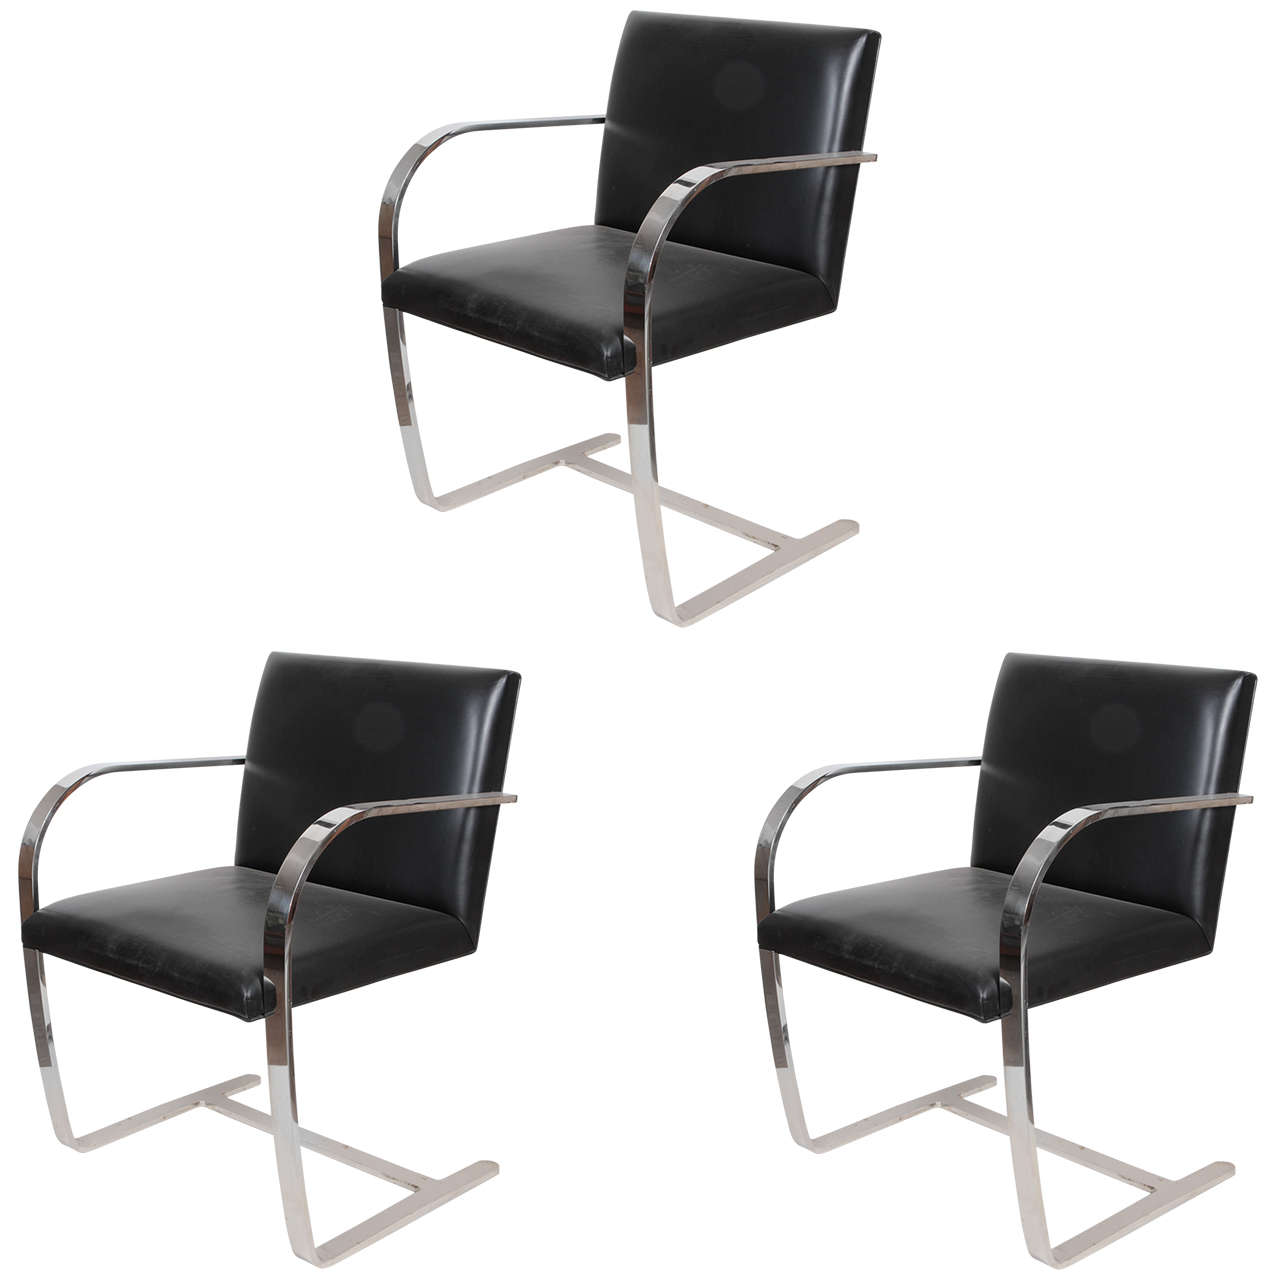 Van Der Rohe Furniture To Mies Van Der Rohe Brno Chairs For Knoll For Sale At 1stdibs